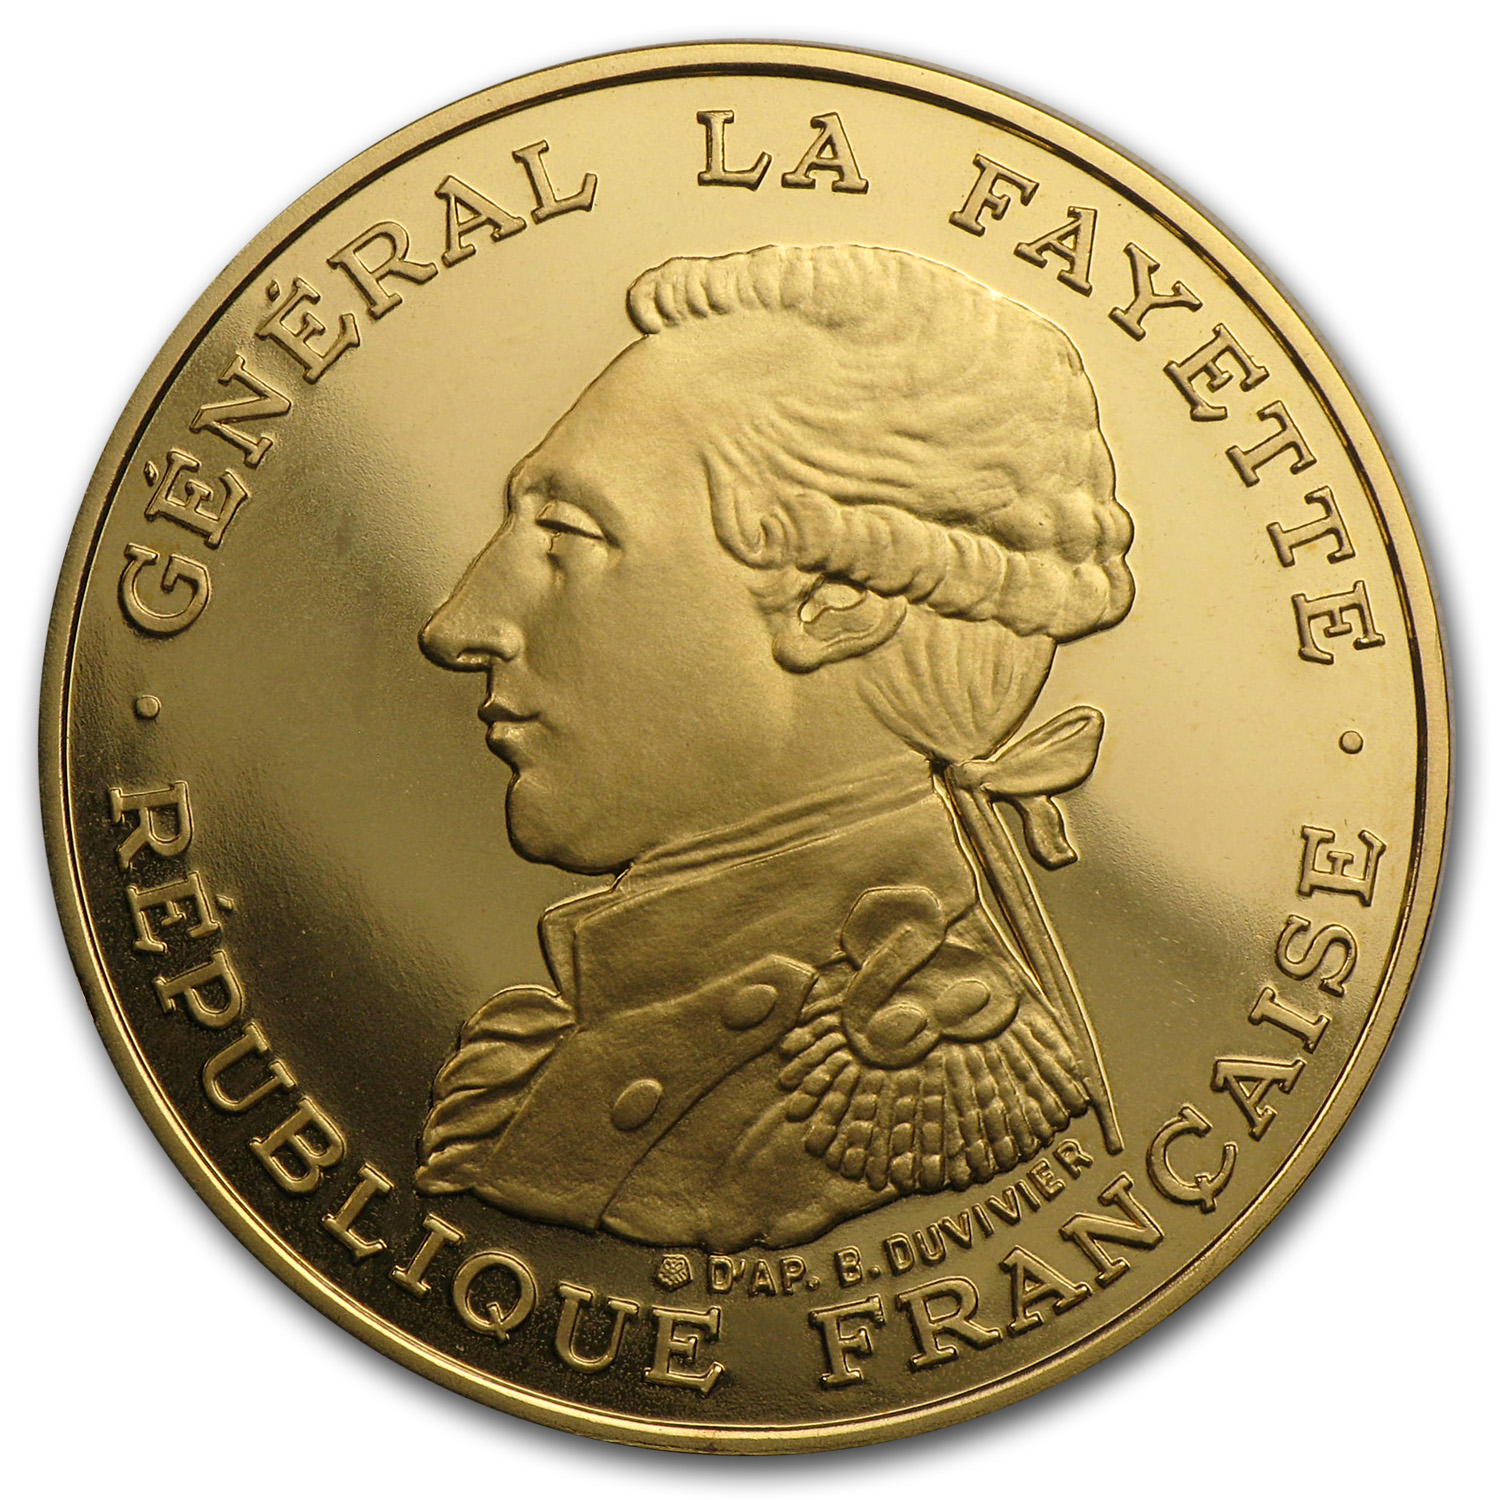 1987 France Proof Gold 100 Francs Lafayette